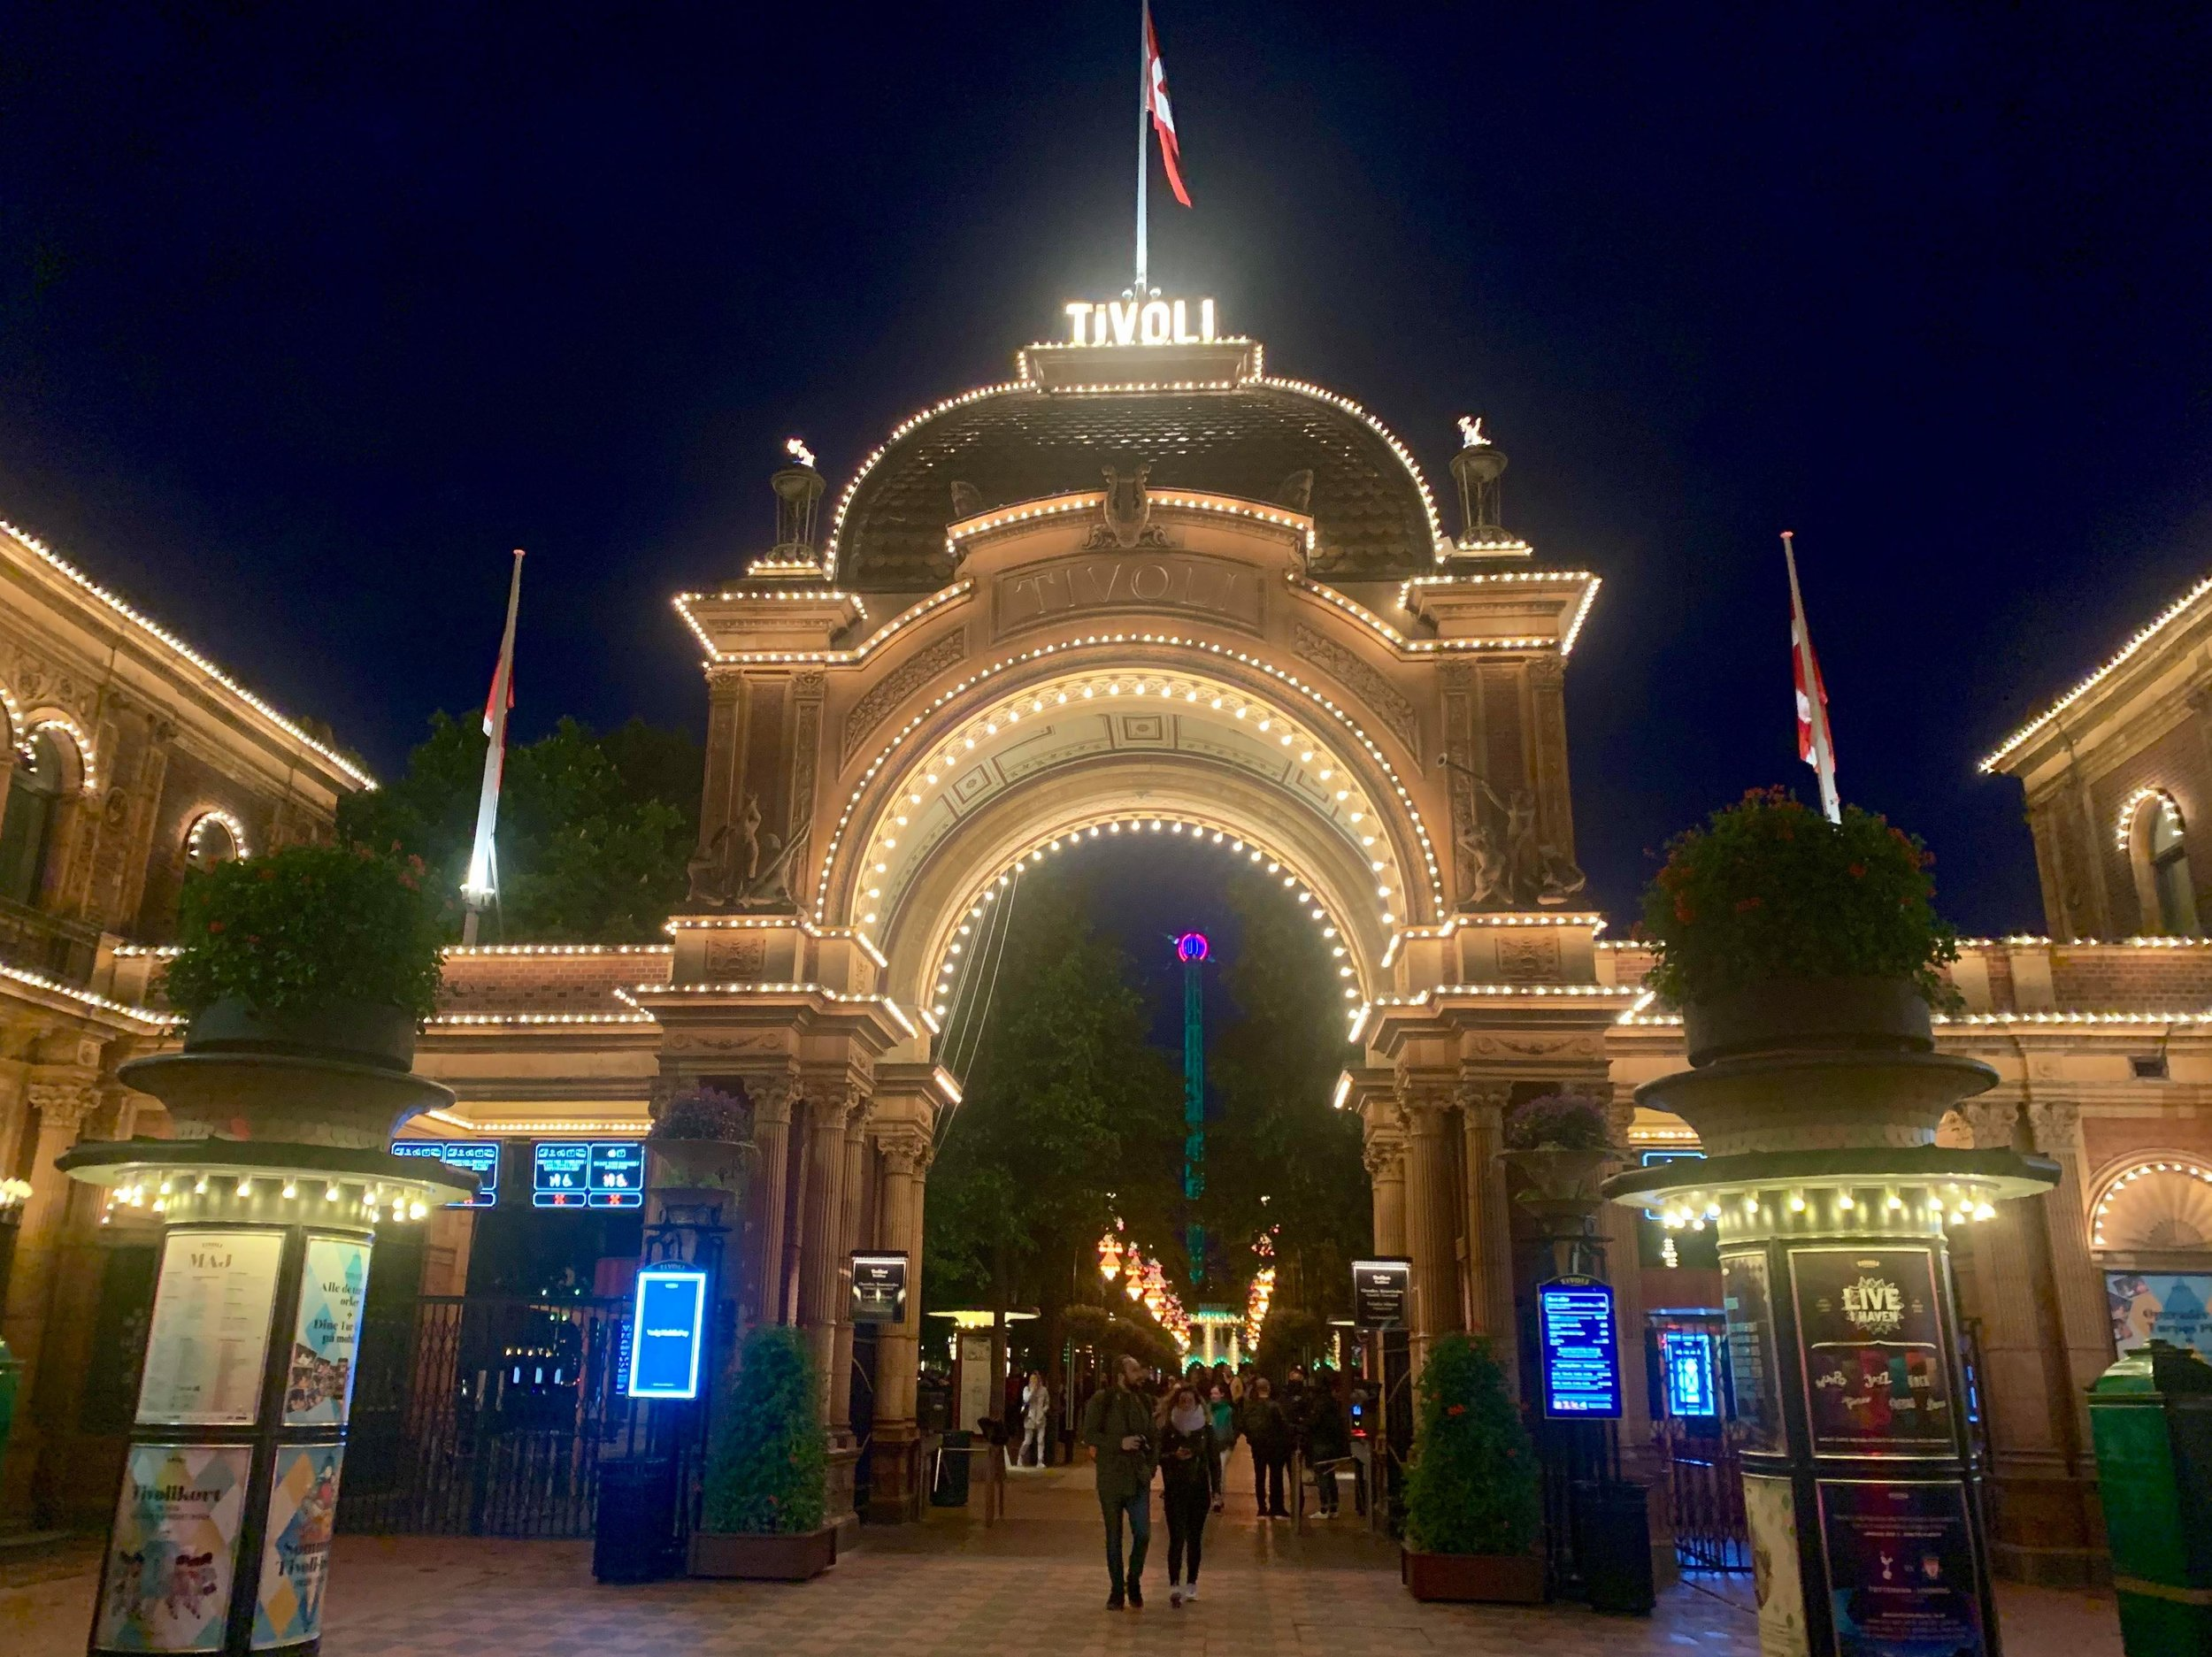 - One of the most popular places in the city for tourists and locals alike, Tivoli was a highlight of our time in Copenhagen, where if I may admit, I enjoyed the rides in perhaps a little too much for some one no longer in their teens.